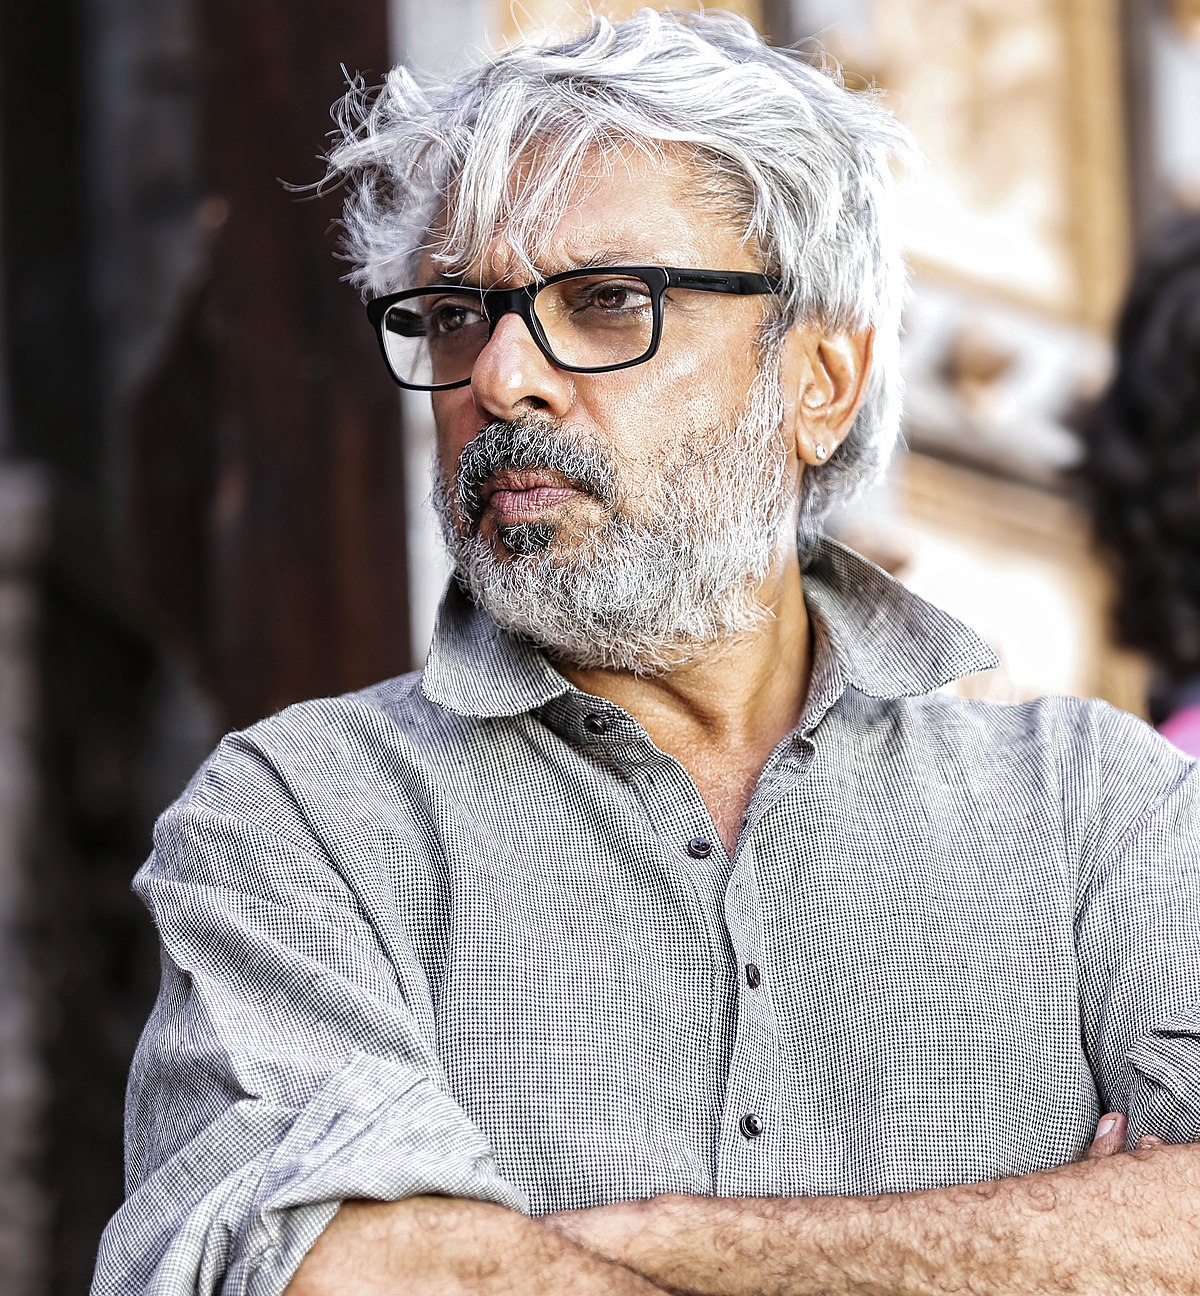 Bhansali has put India on the global map of cinema with movies like Devdas premiering at the Cannes Film Festival in 2002.